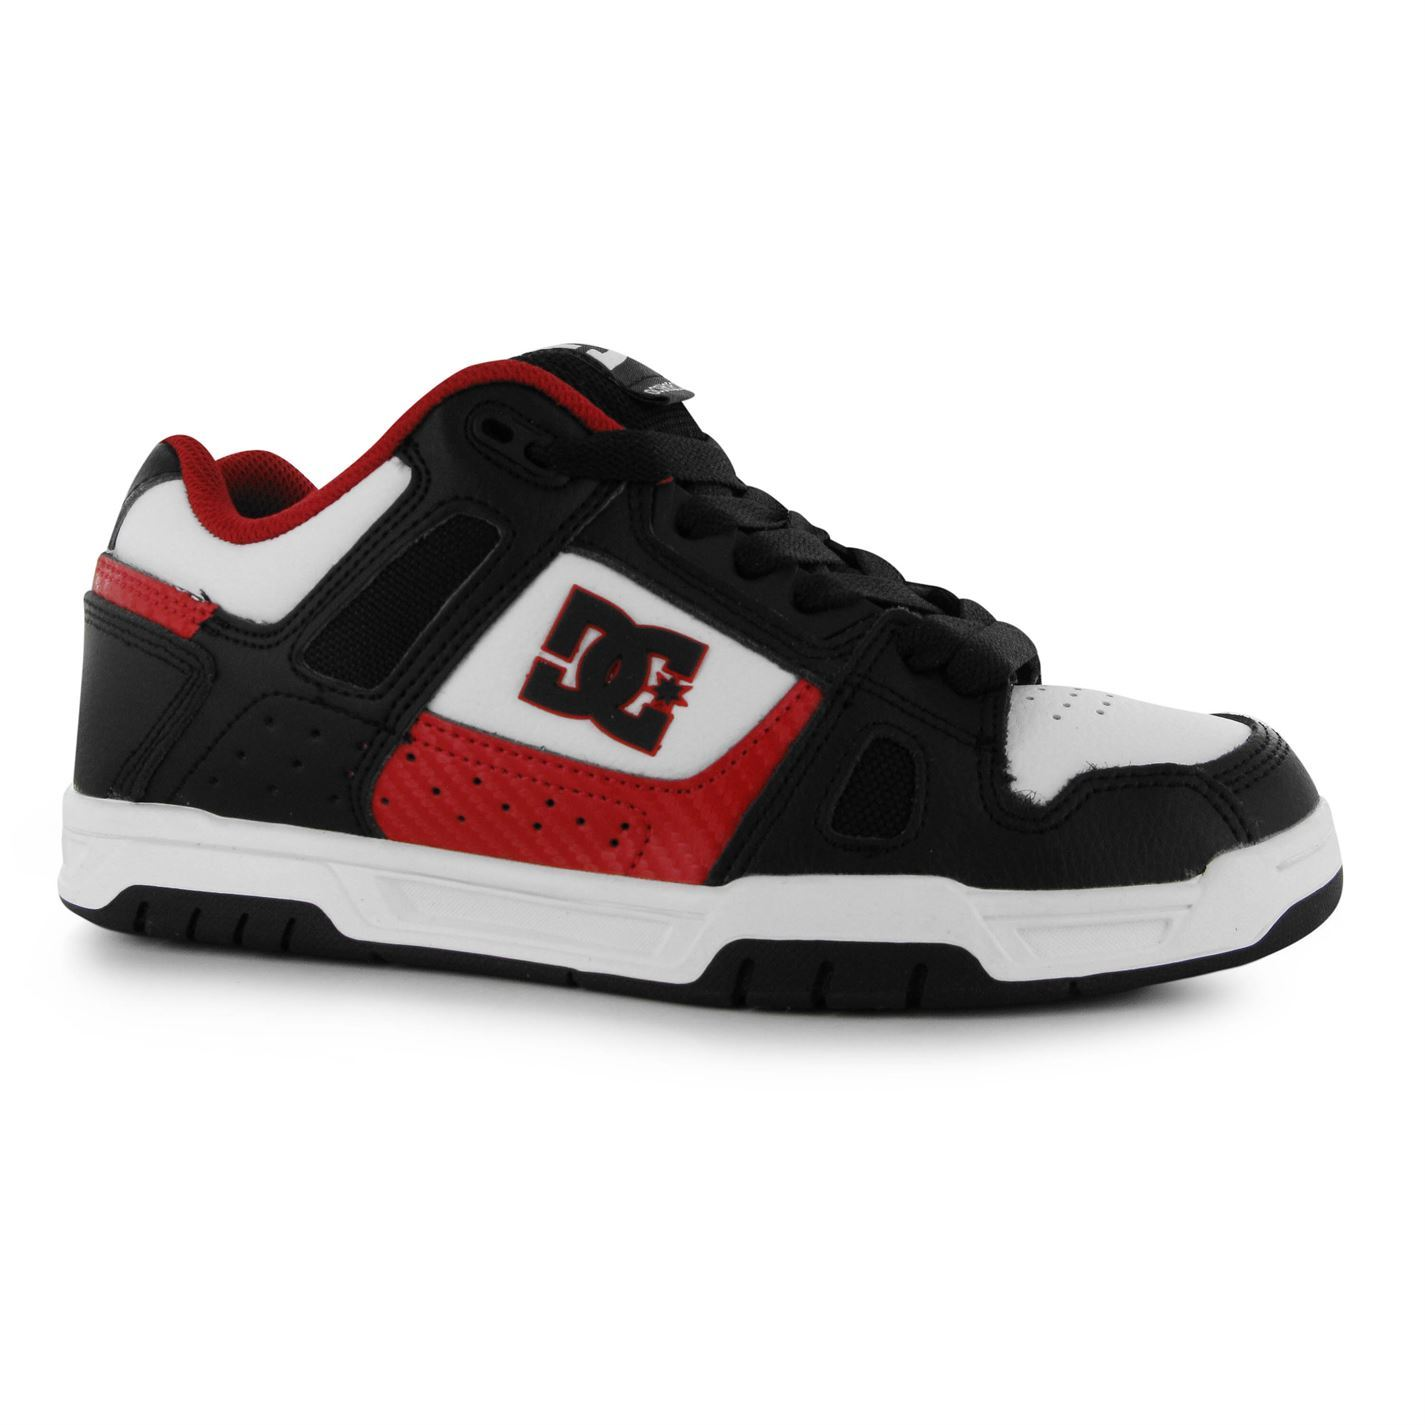 Dc Leather Skate Shoes